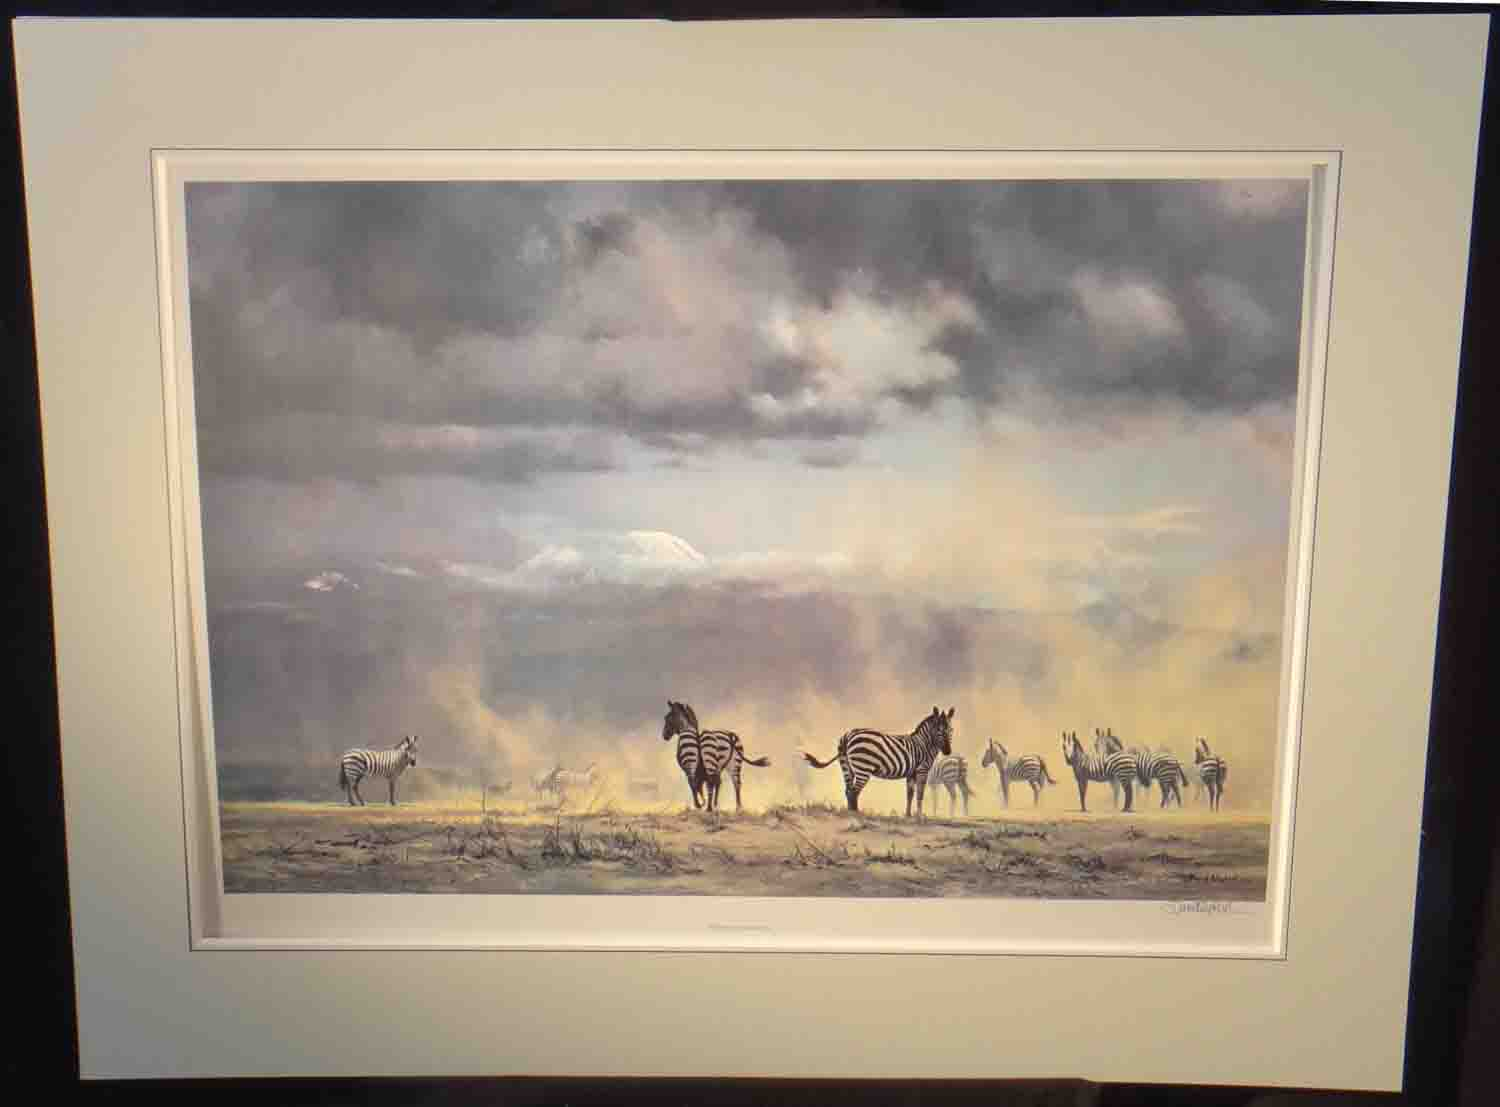 david shepherd, Storm over Amboseli, signed limited edition print